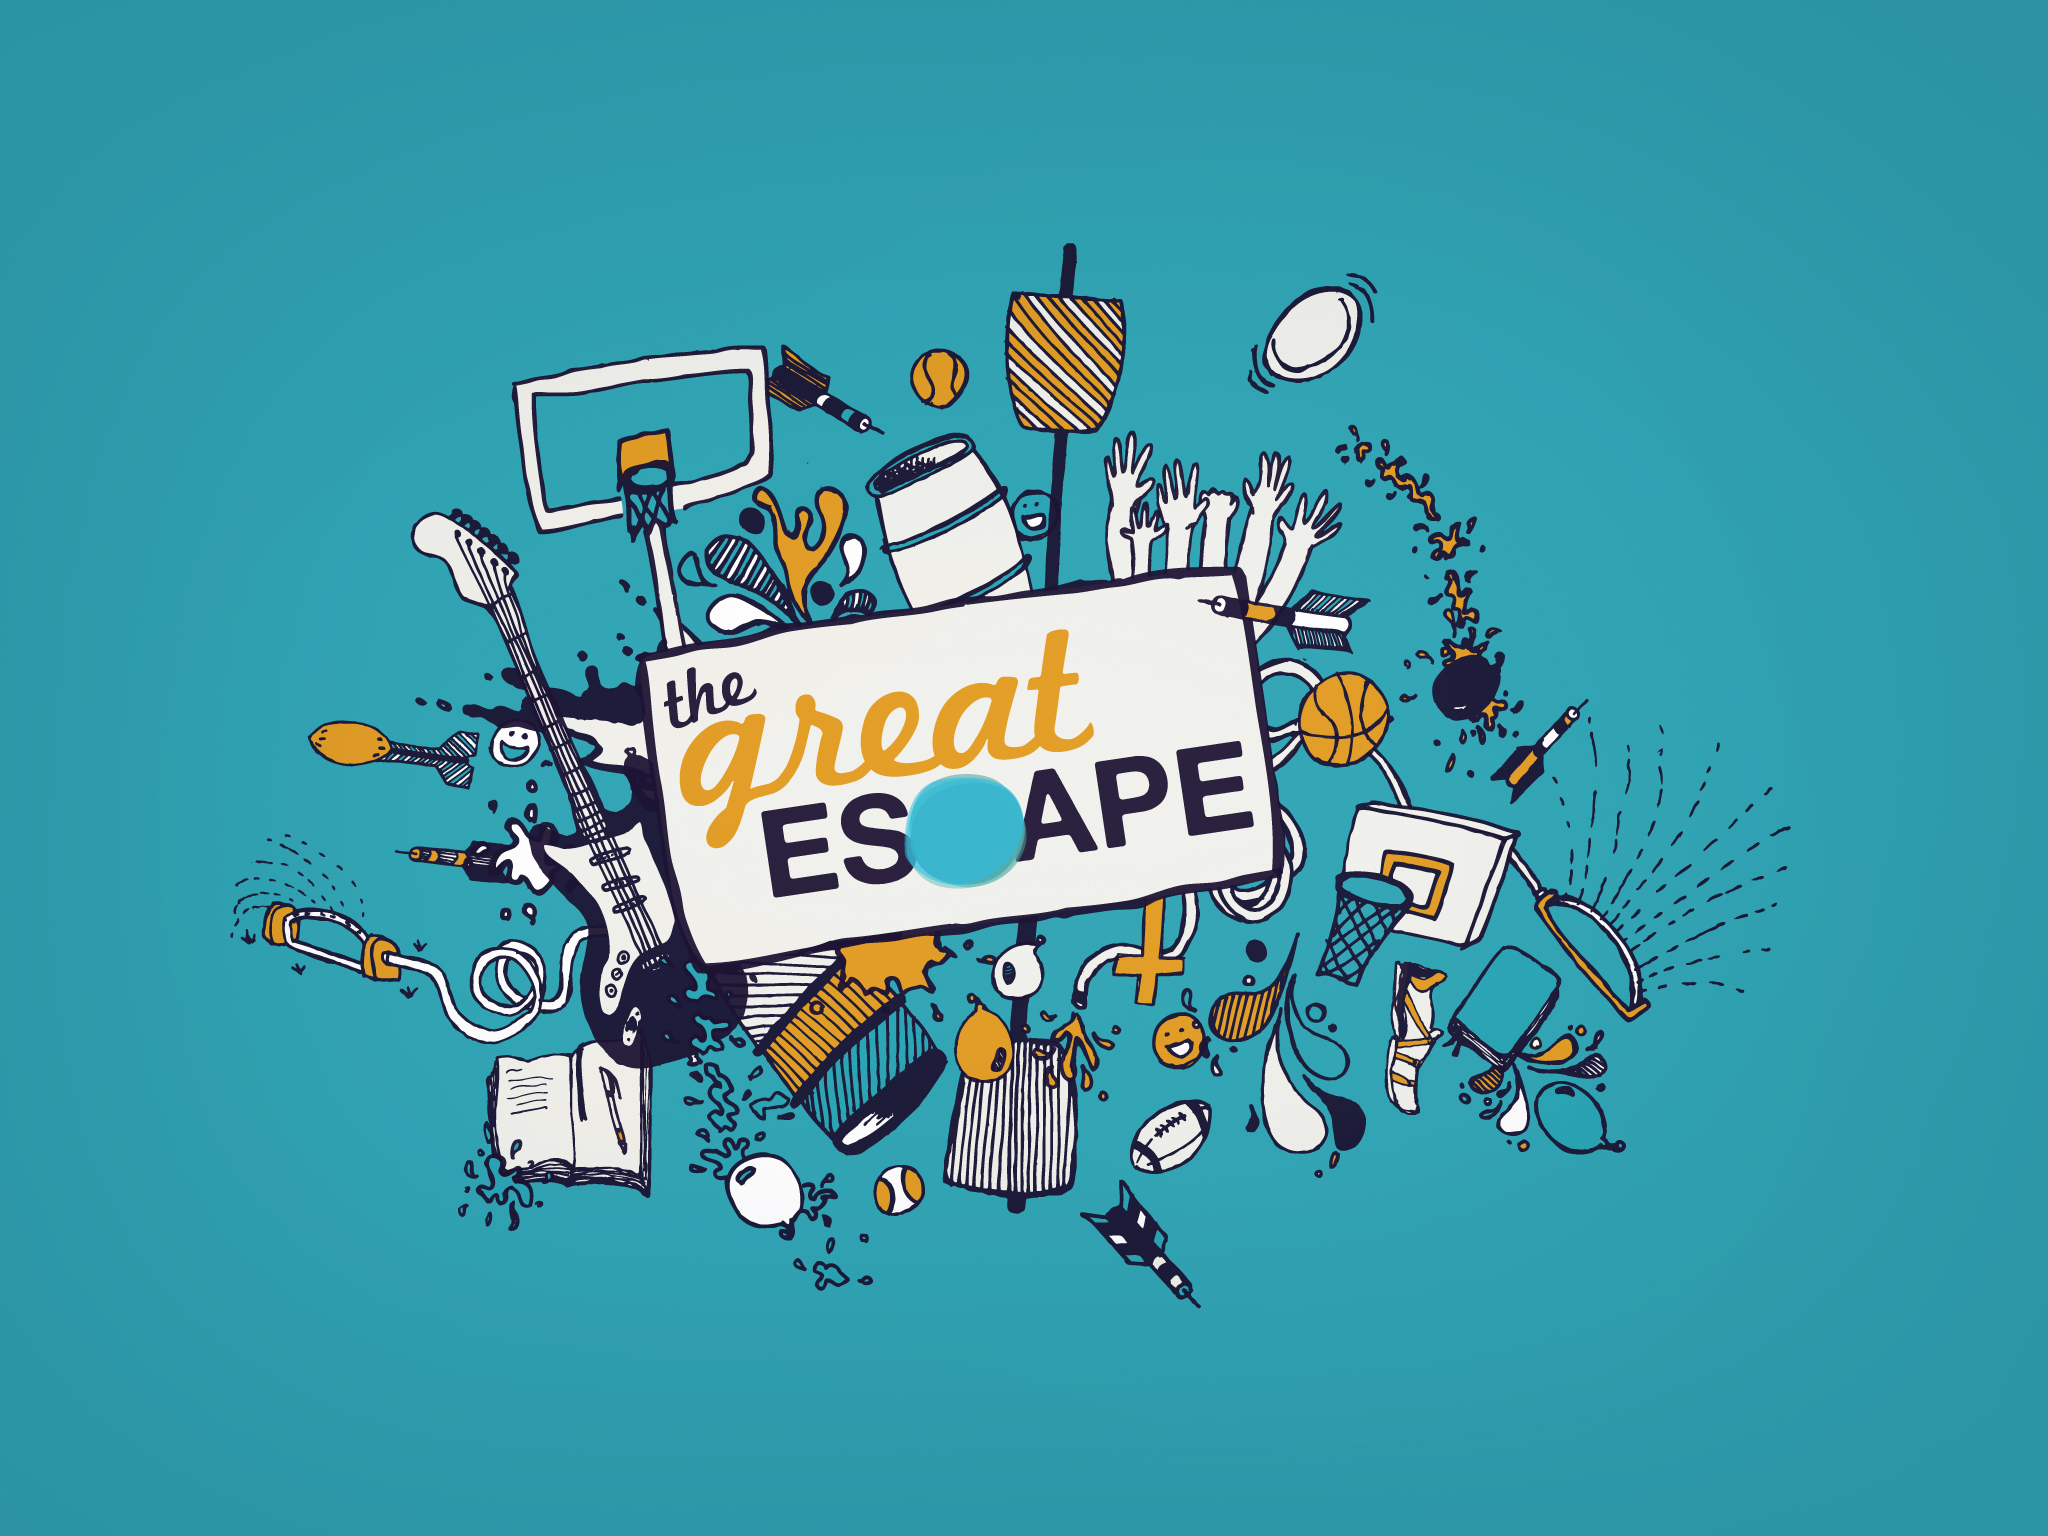 The Great Escape Wallpaper (2048x1536)